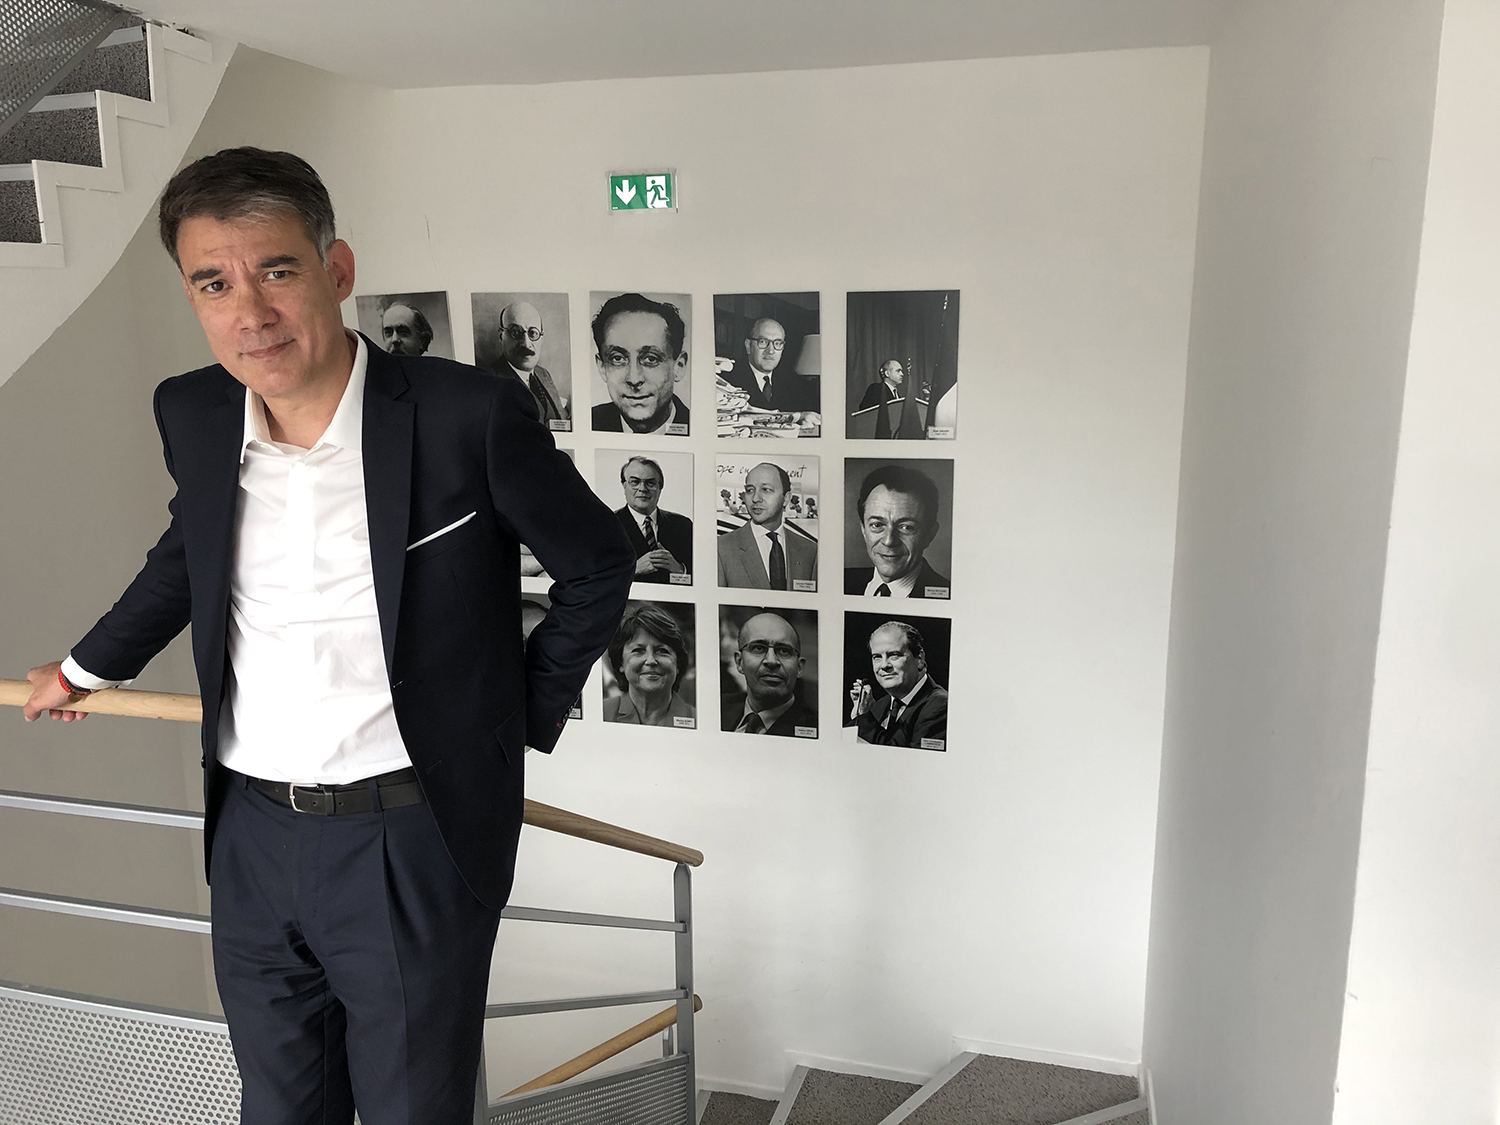 Olivier Faure, first secretary of the Socialist Party, in front of images of past party leaders at the party's headquarters in Ivry-sur-Seine, France, on June 25.